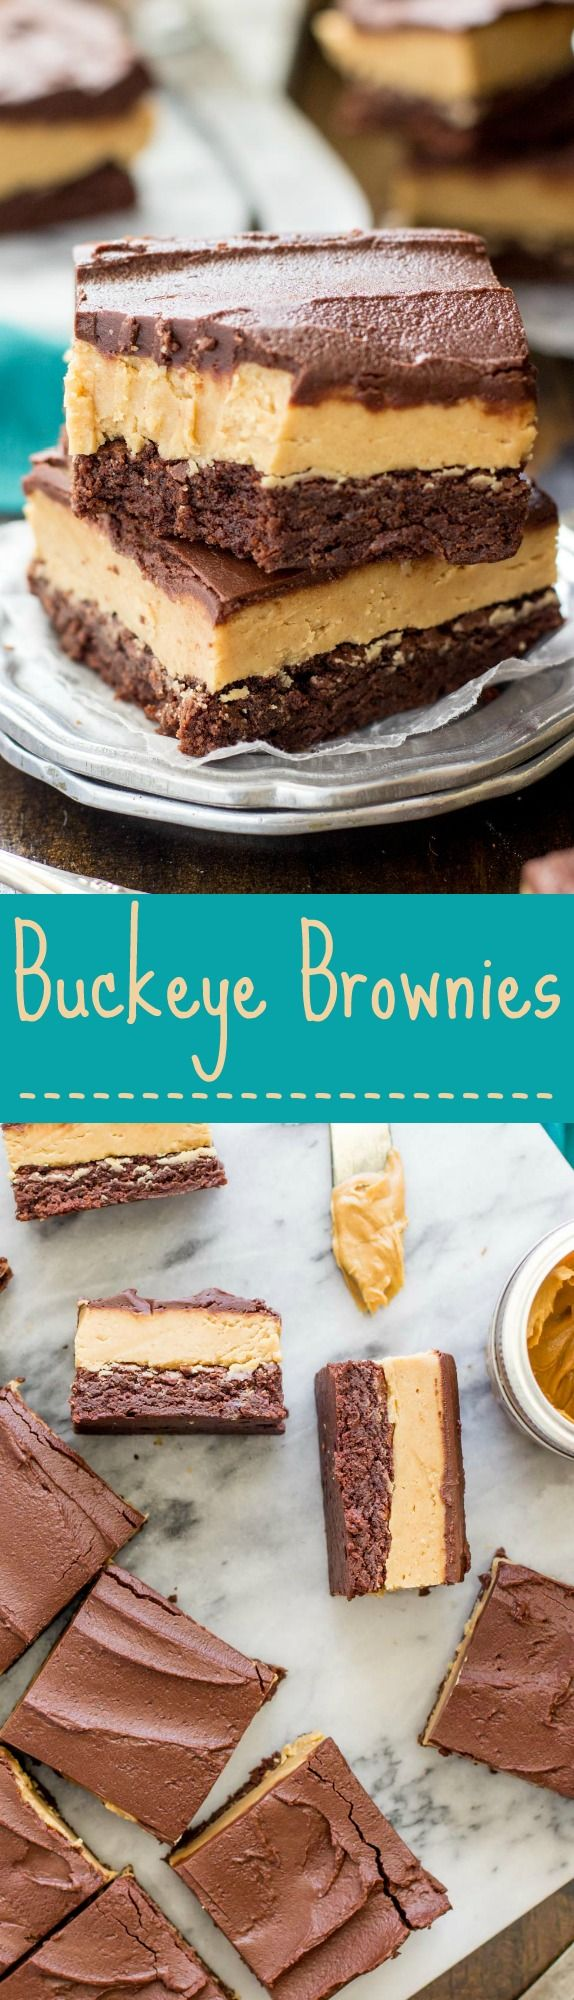 Buckeye Brownies -- These are DELICIOUS!